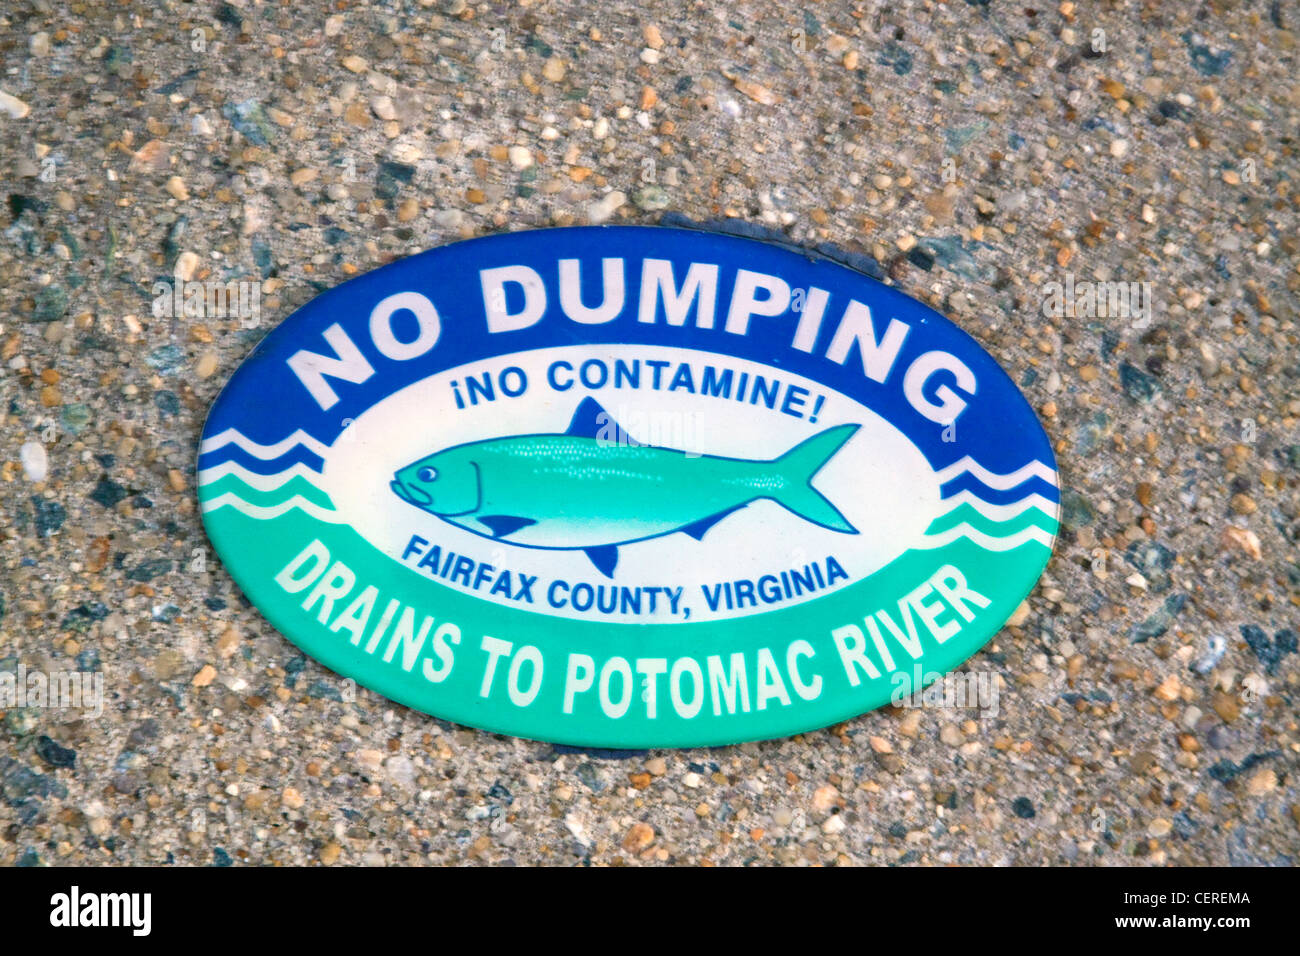 Fairfax County Virginia No Dumping Drains to Potomac River sign on top of a storm water drainage catch basin inlet - Stock Image